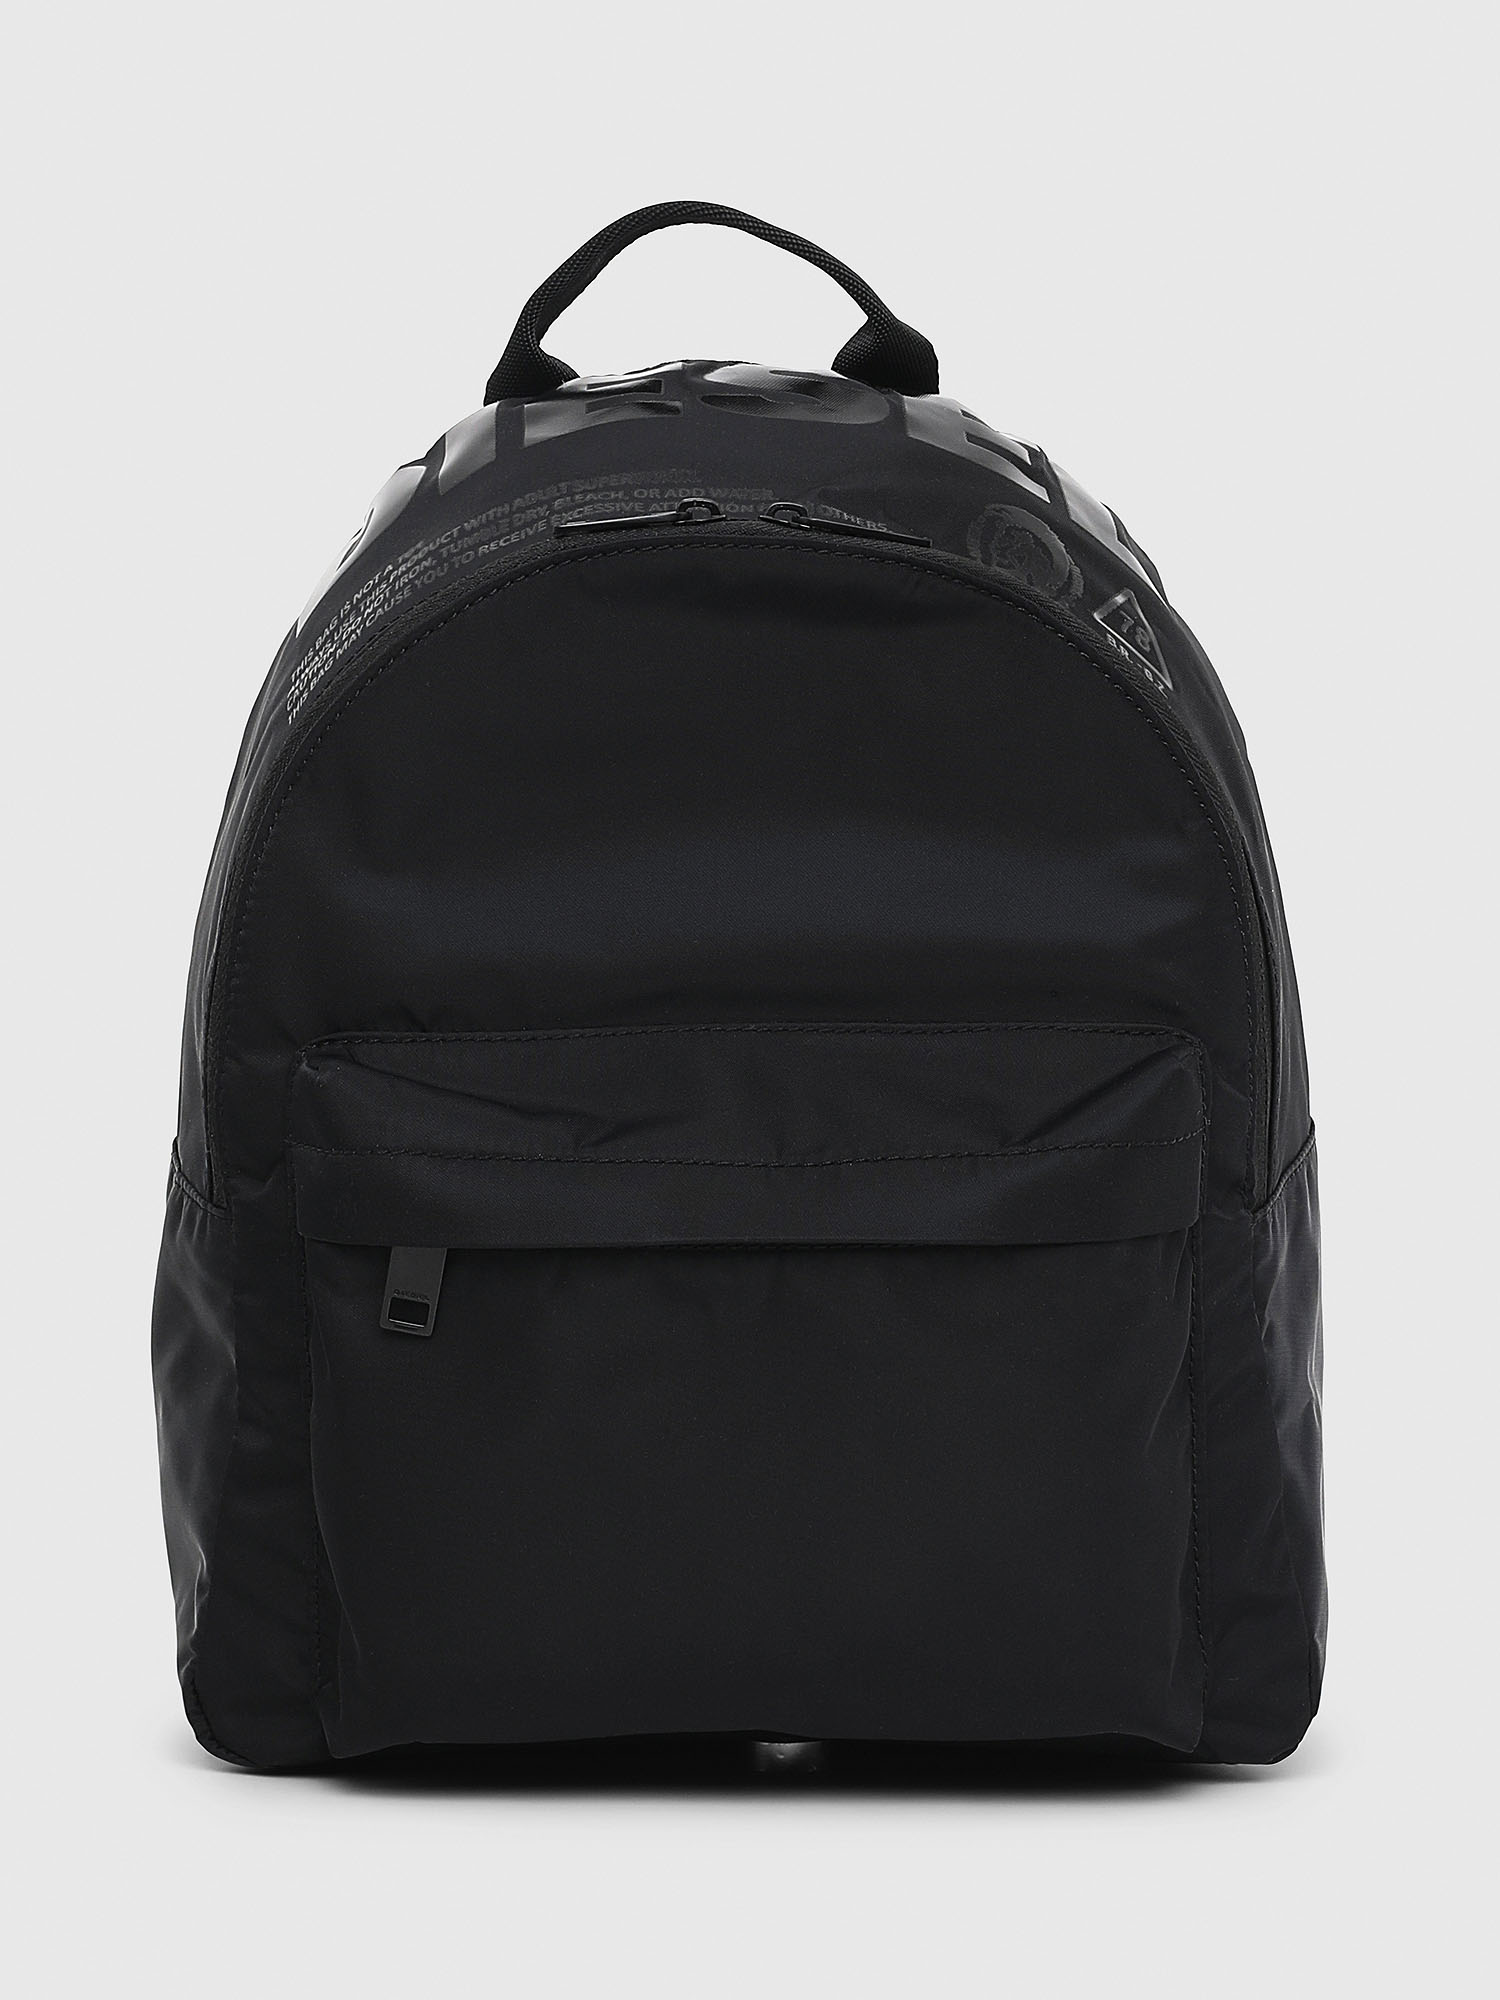 Diesel Backpacks P2249 - Black